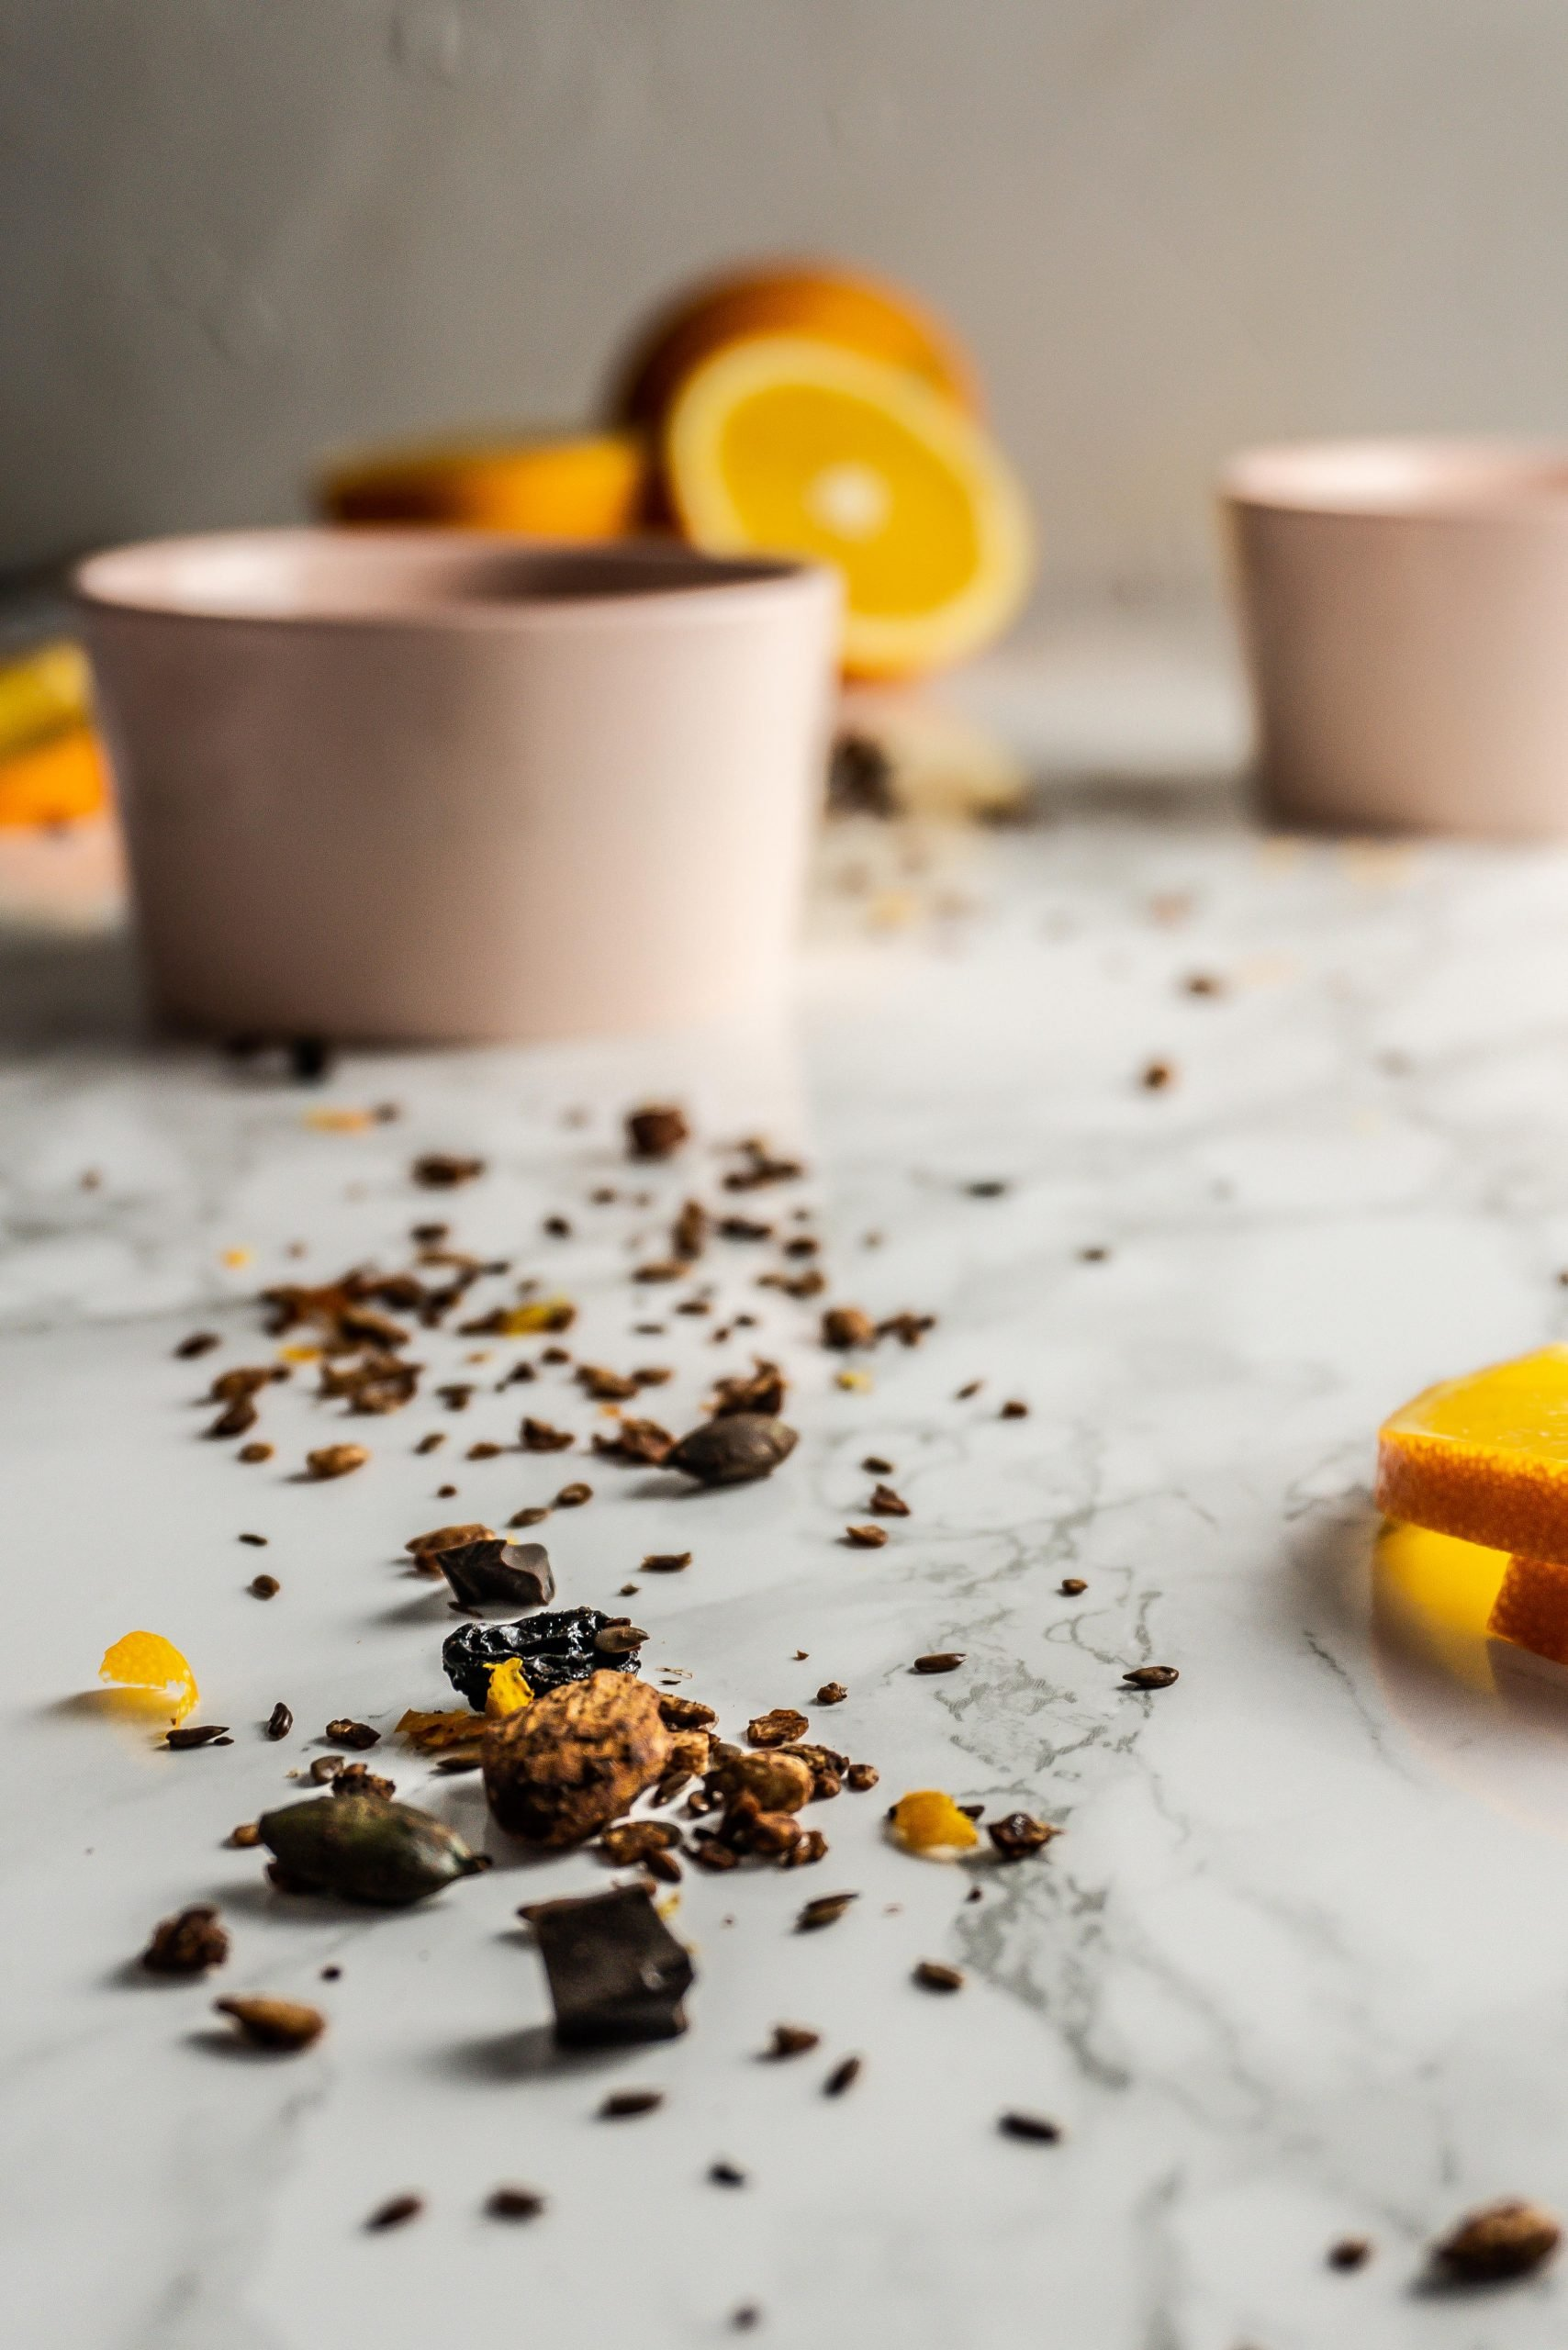 Chocolate Orange Granola strewn in focus with two bowls and oranges slightly visible in the background